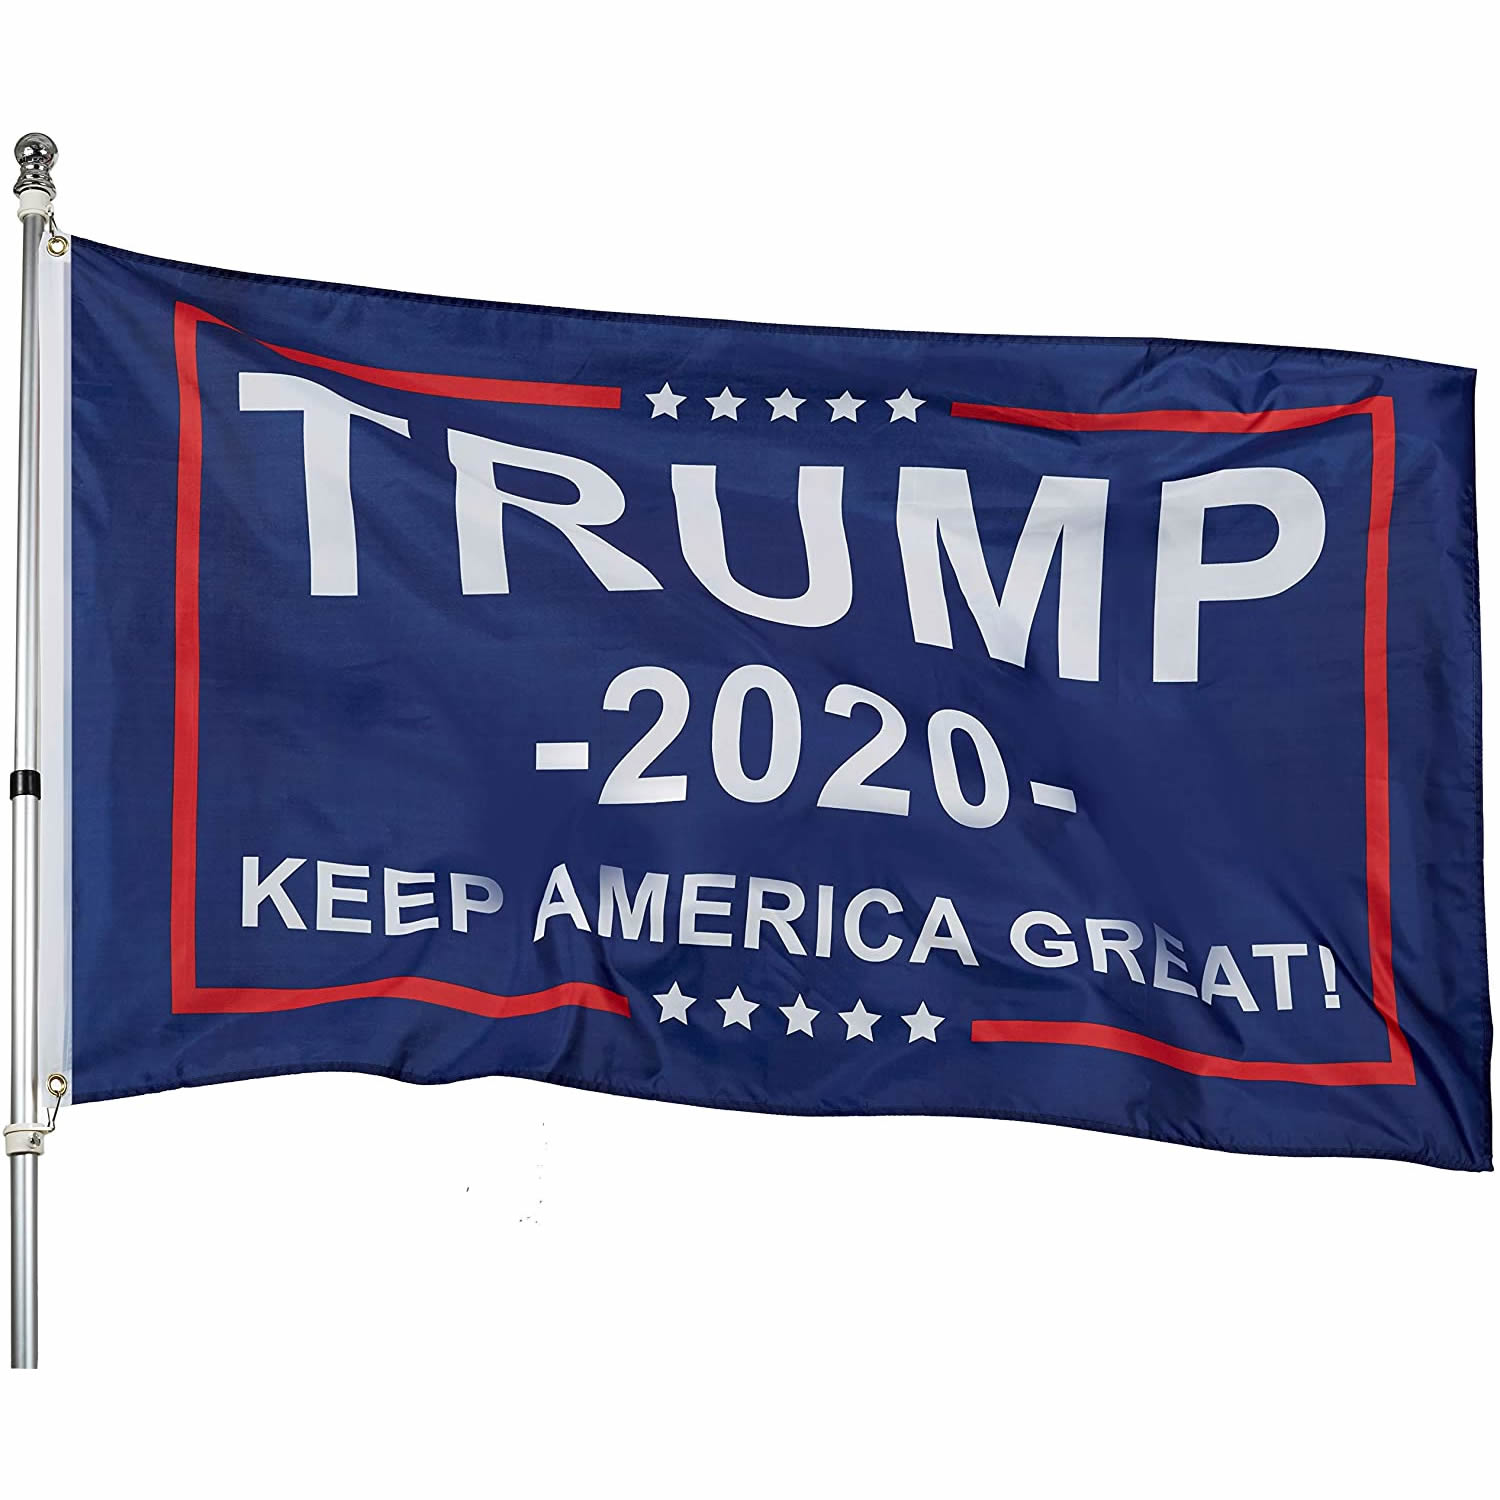 3x5 Feet Donald Trump <strong>Flag</strong> - Trump 2020 Keep America Great! - Make America Great Again - Indoors Outdoors Banner